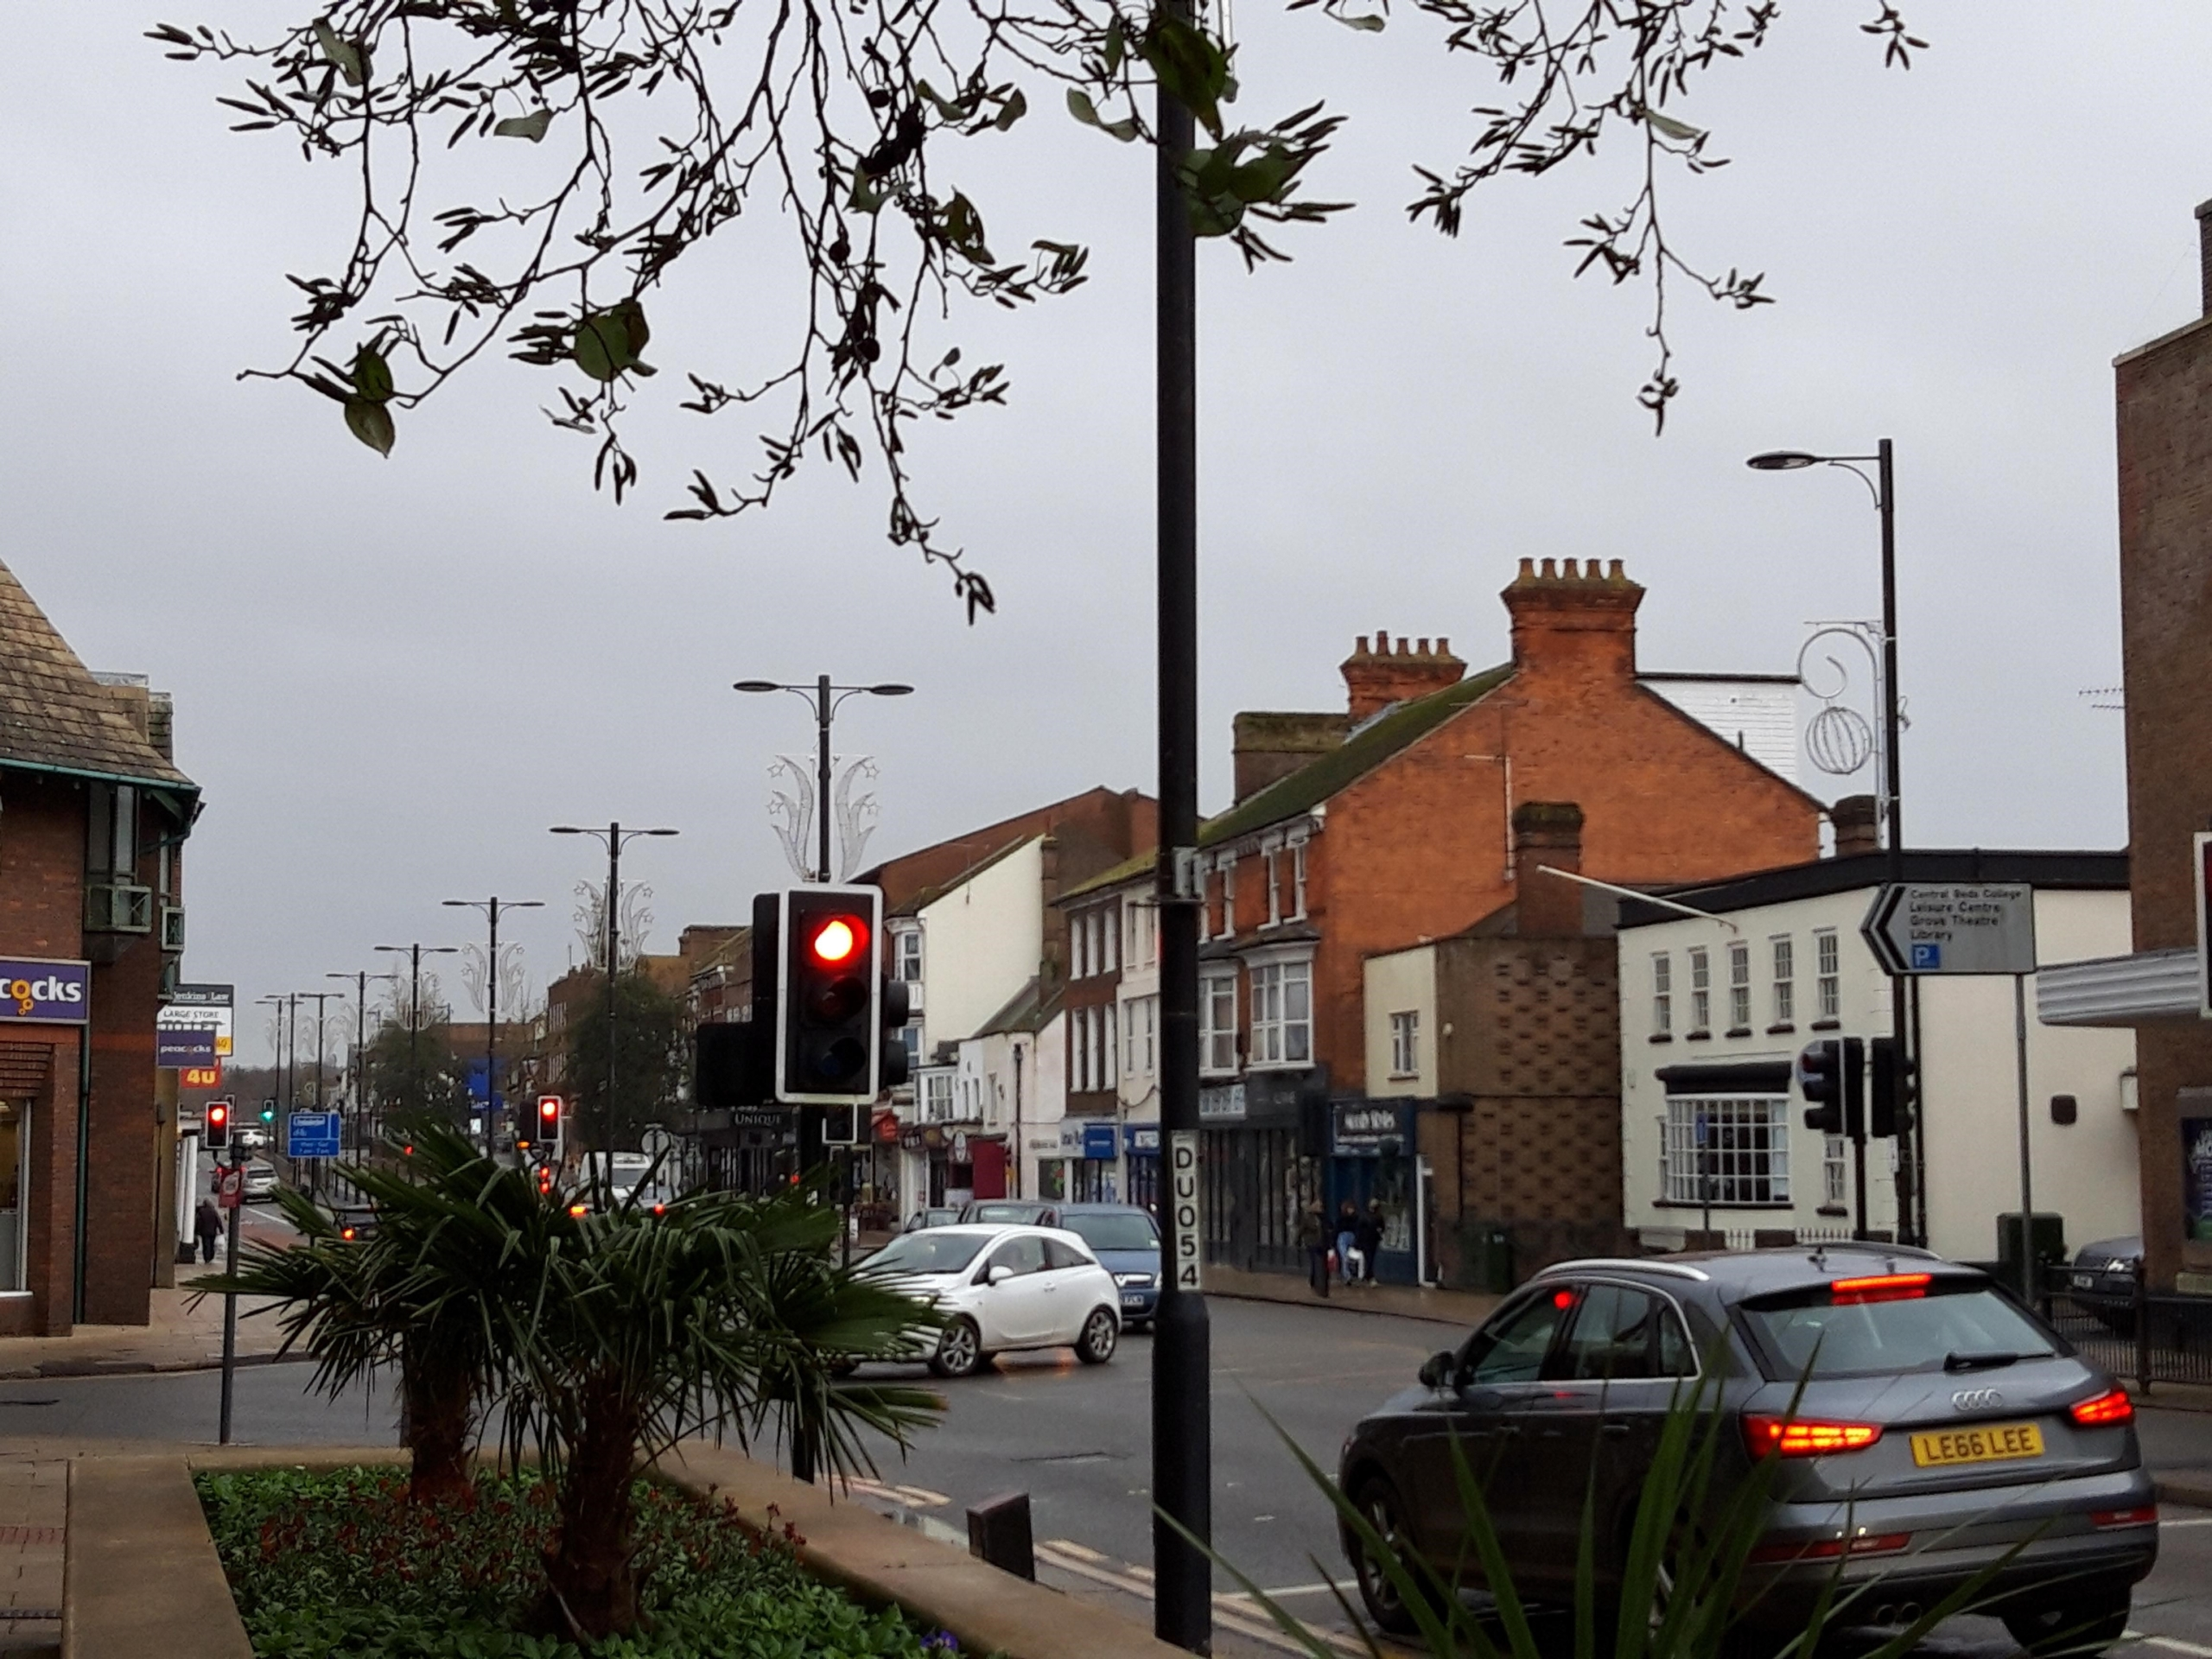 Dunstable Highstreet South